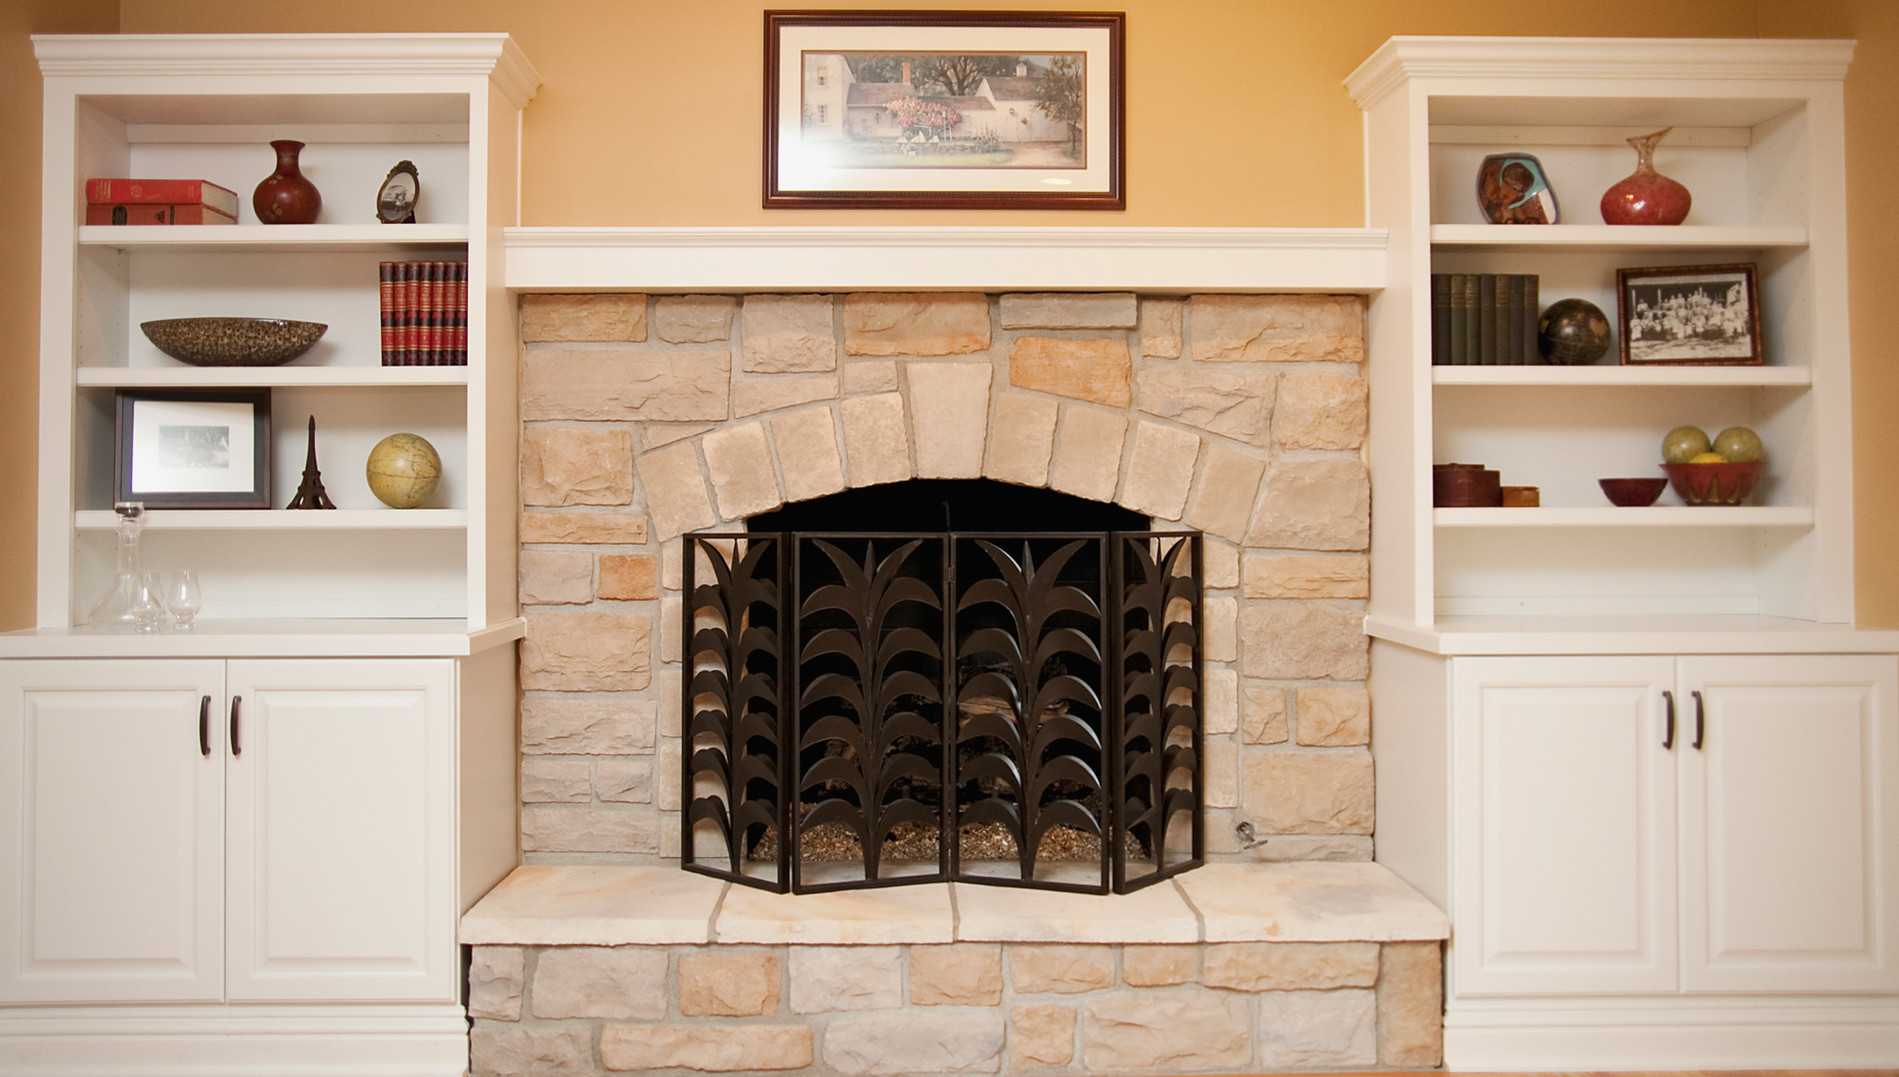 Fireplace with built